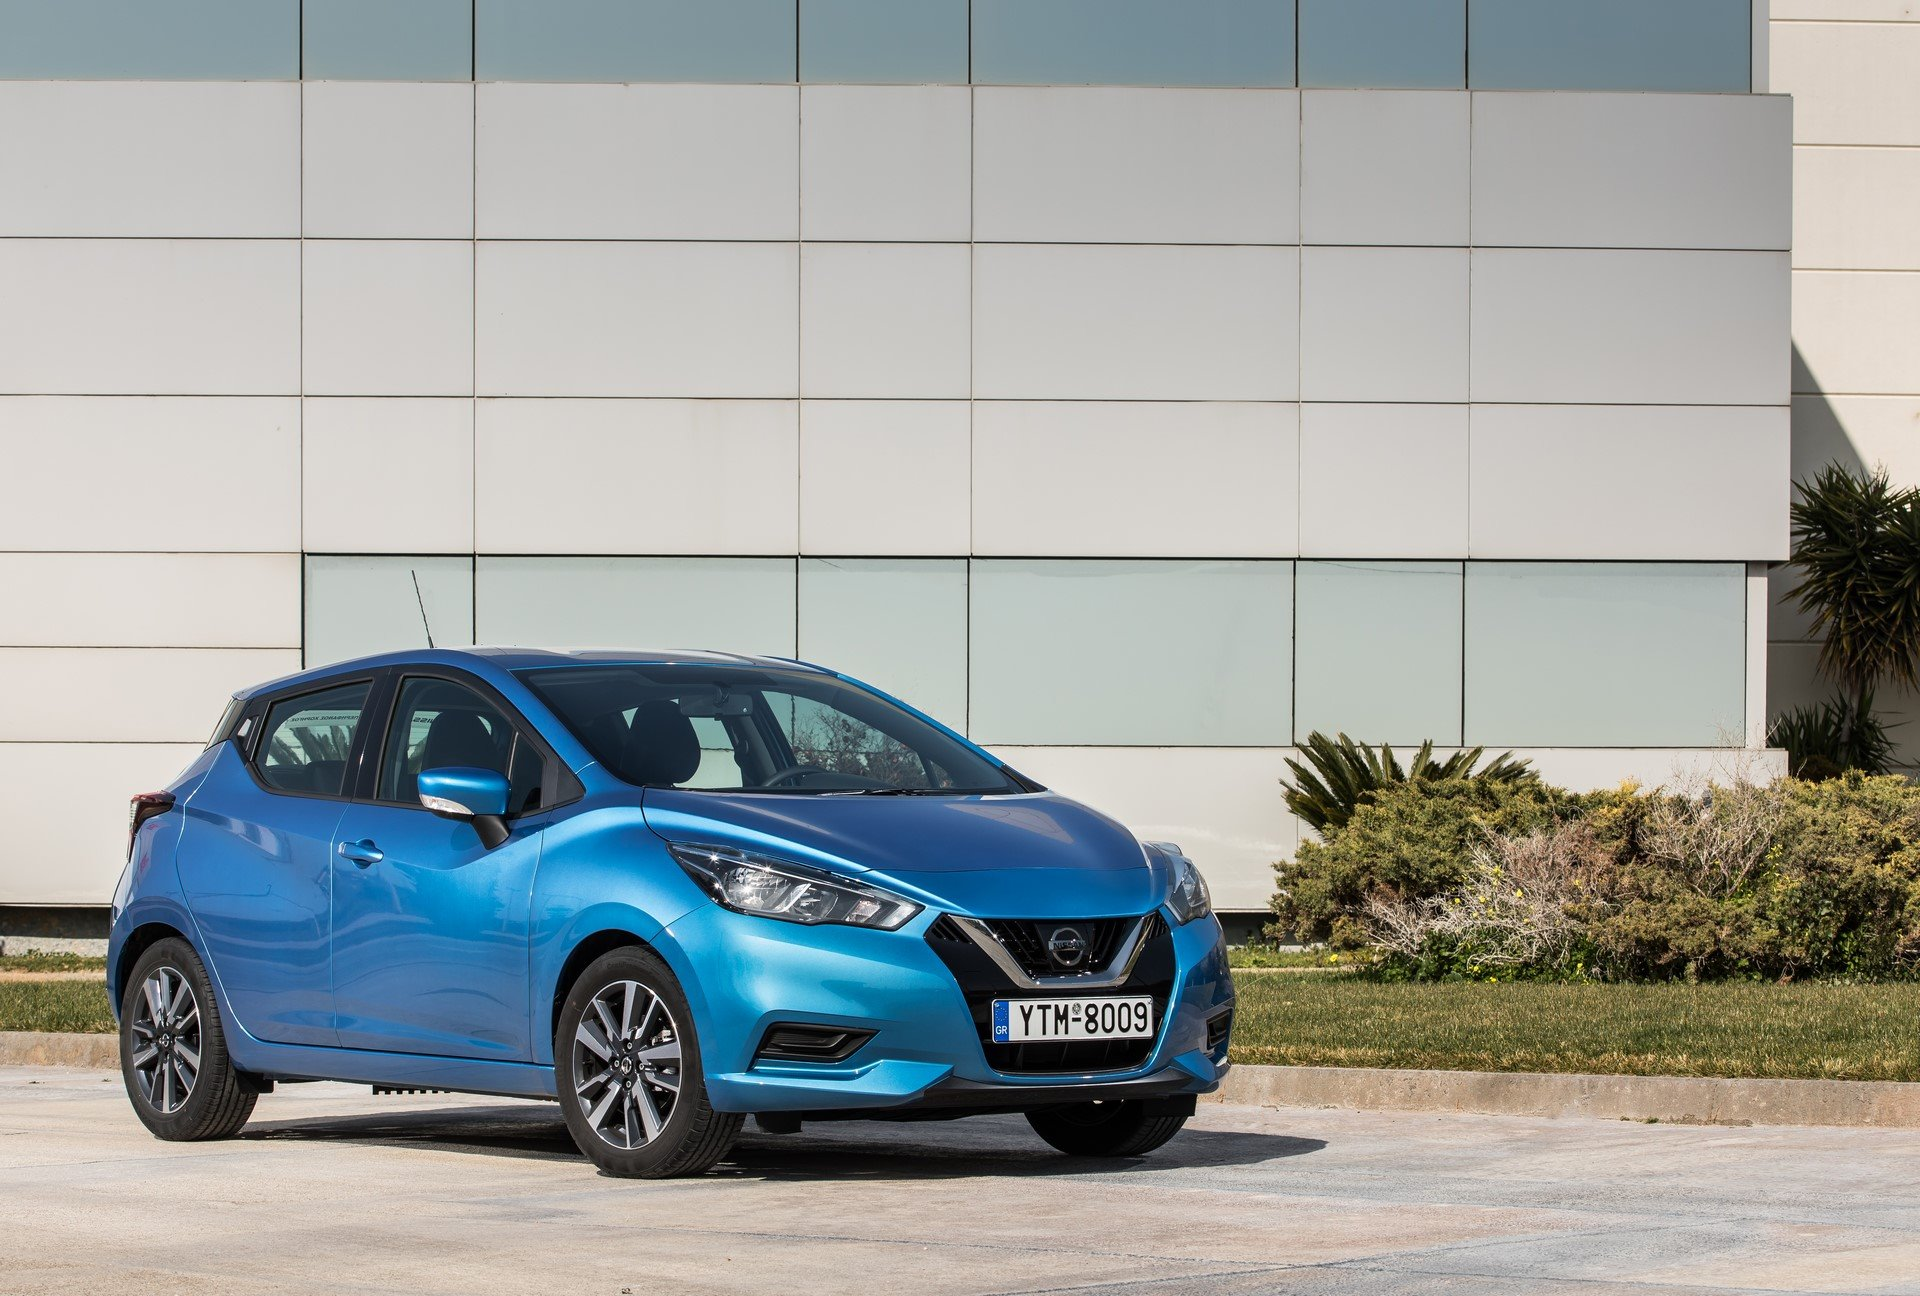 Nissan Micra 2019 Greek (29)